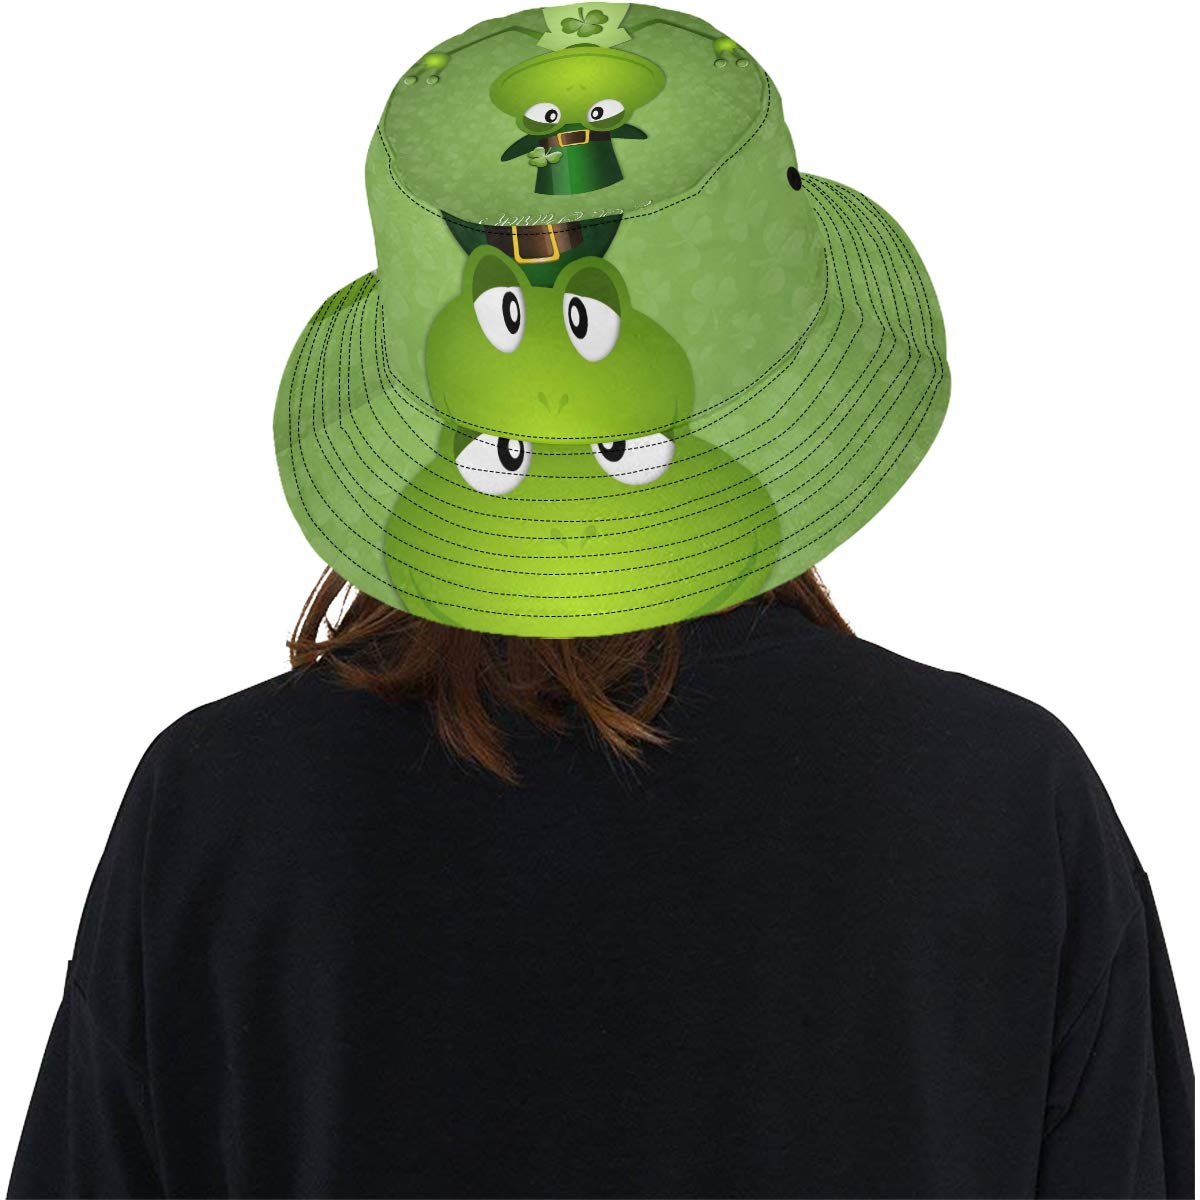 Green Little Pond Happy Frog New Summer Unisex Cotton Fashion Fishing Sun Bucket Hats for Kid Teens Women and Men with Customize Top Packable Fisherman Cap for Outdoor Travel